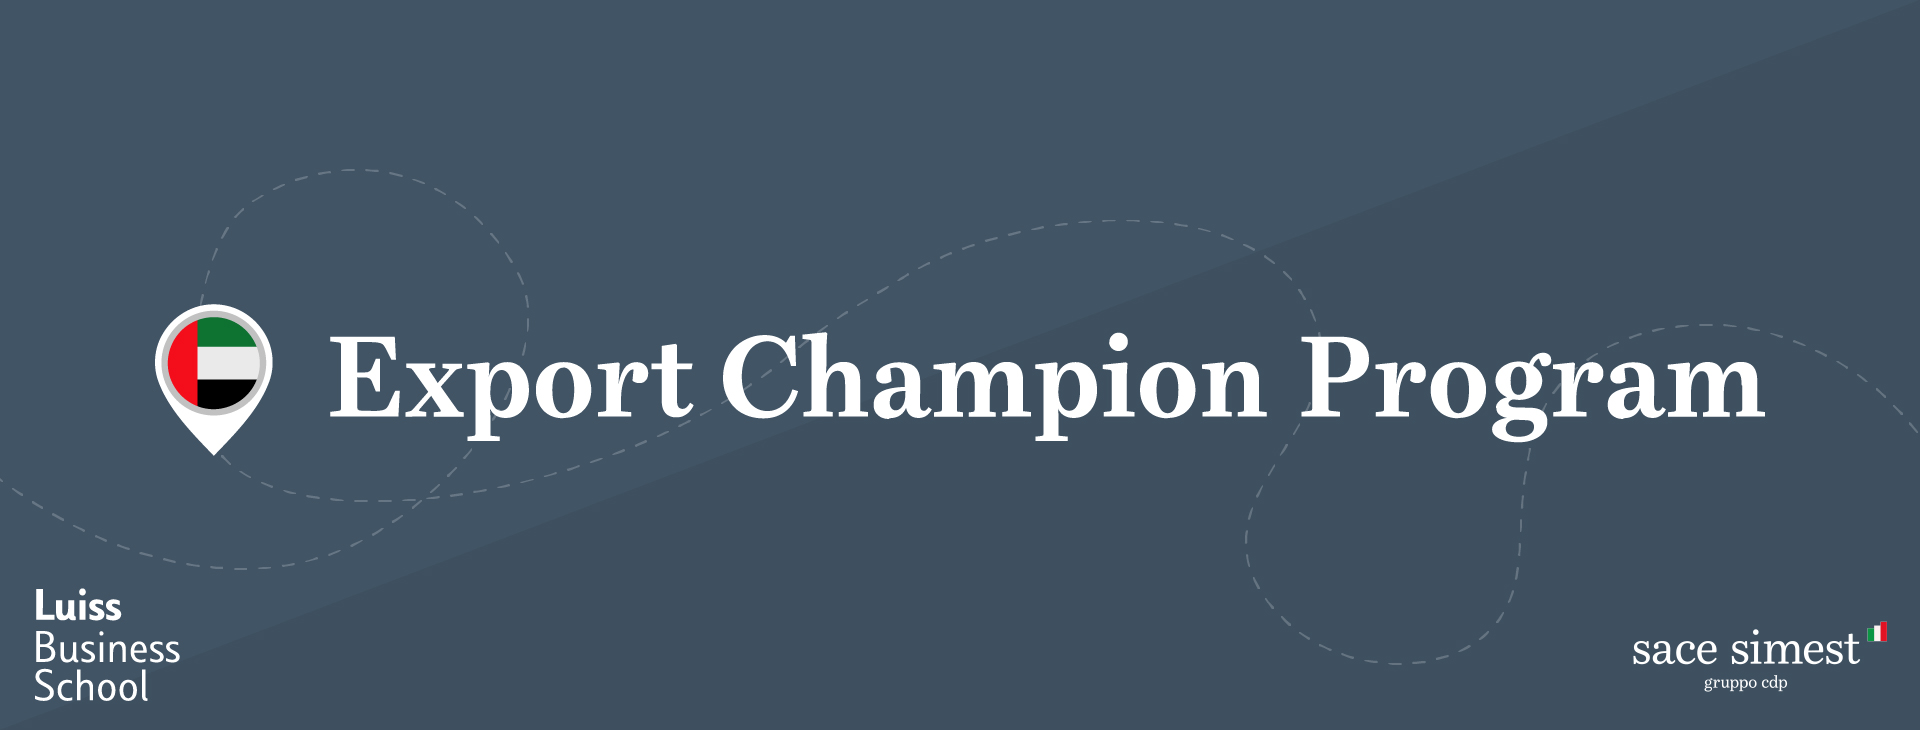 Export Champion Program 2020 | Obiettivo Emirati Arabi Uniti